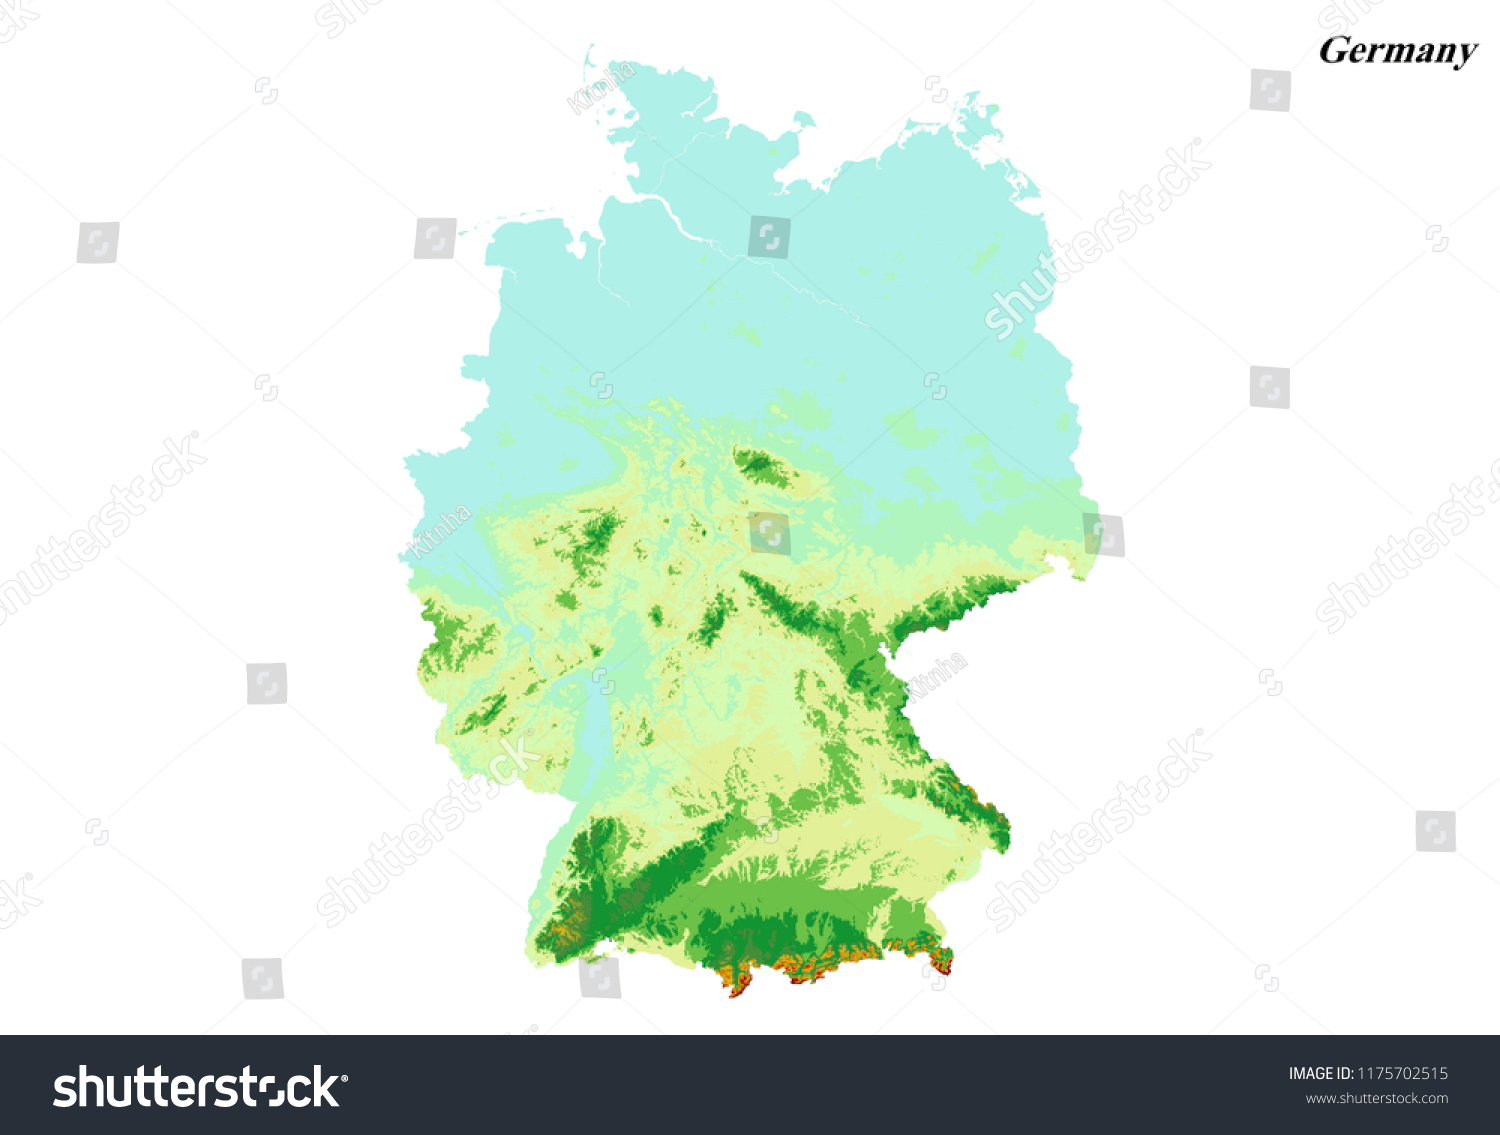 Elevation Map Of Germany.Germany Elevation Map 3 D Rendering Stock Illustration 1175702515